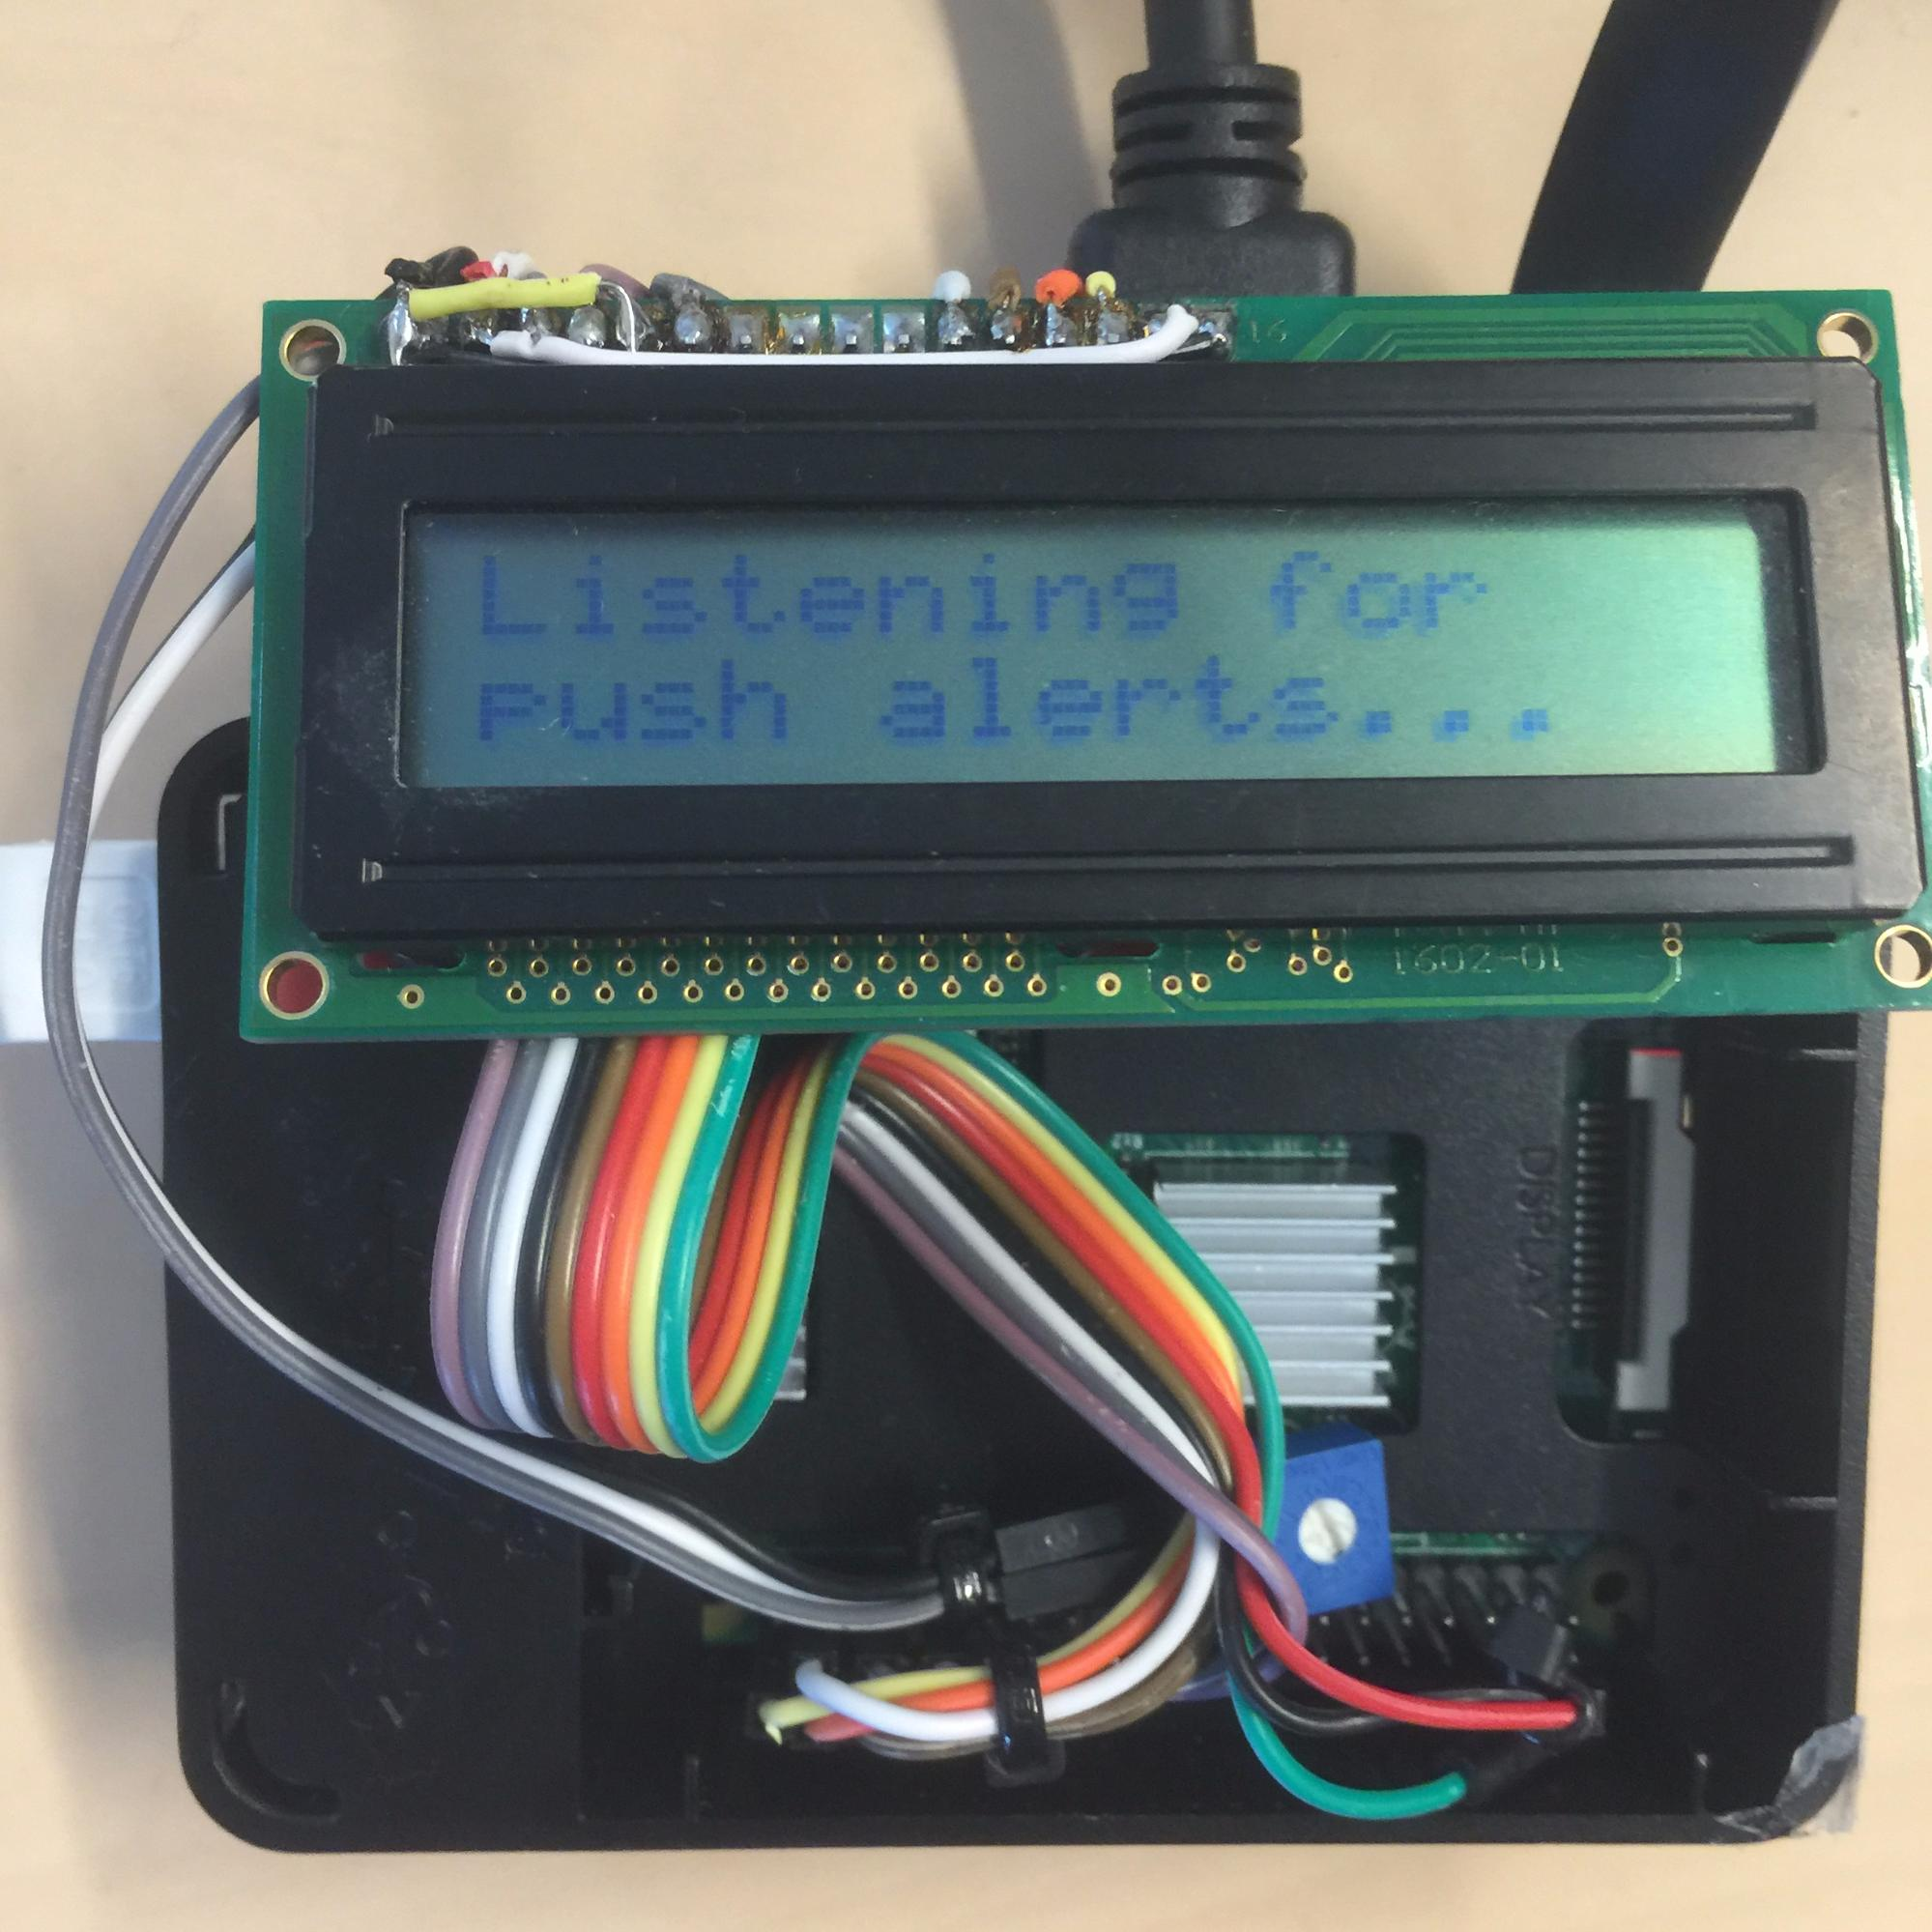 photo-of-led-screen-waiting-for-push-notification-for-android-things-raspberry-pi-illustration-for-push-enabled-iot-device